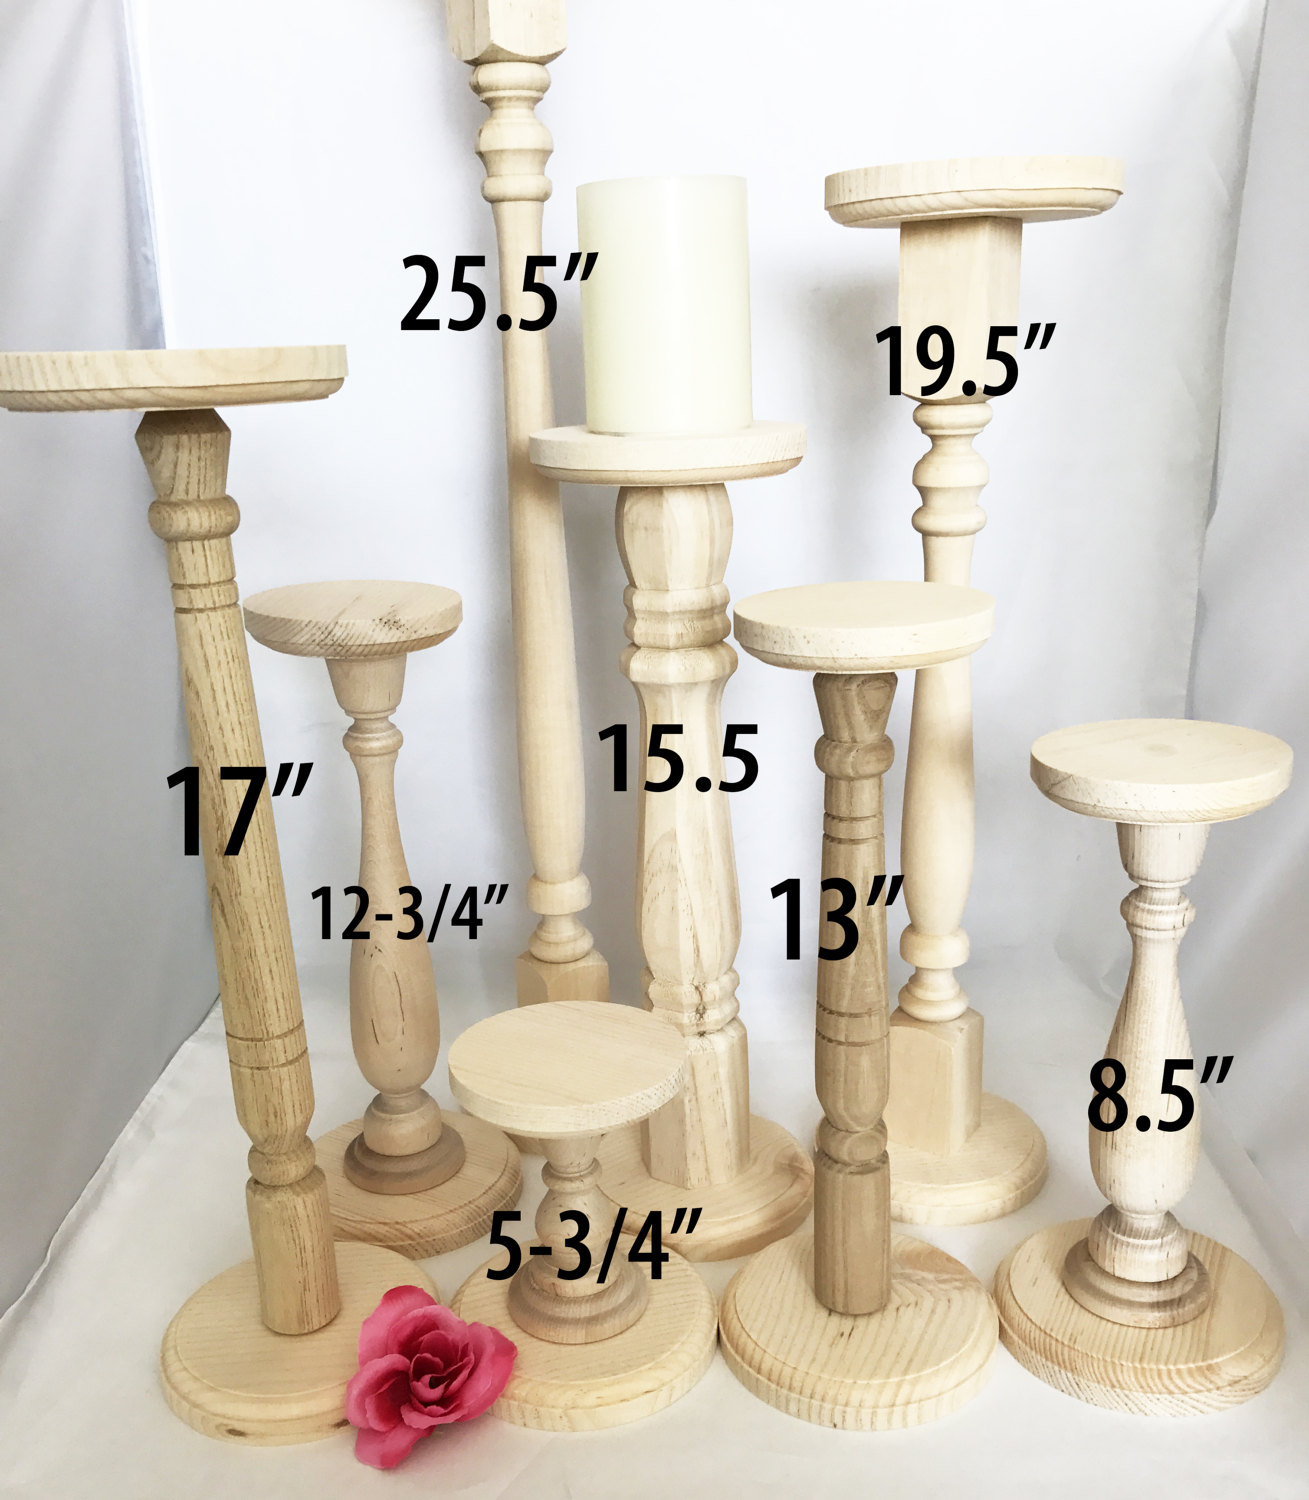 extra tall unfinished wood pillar candlestick holders diy wedding accents table accent plastic adirondack side decorative storage cabinets pier one bench wine rack shelf slim